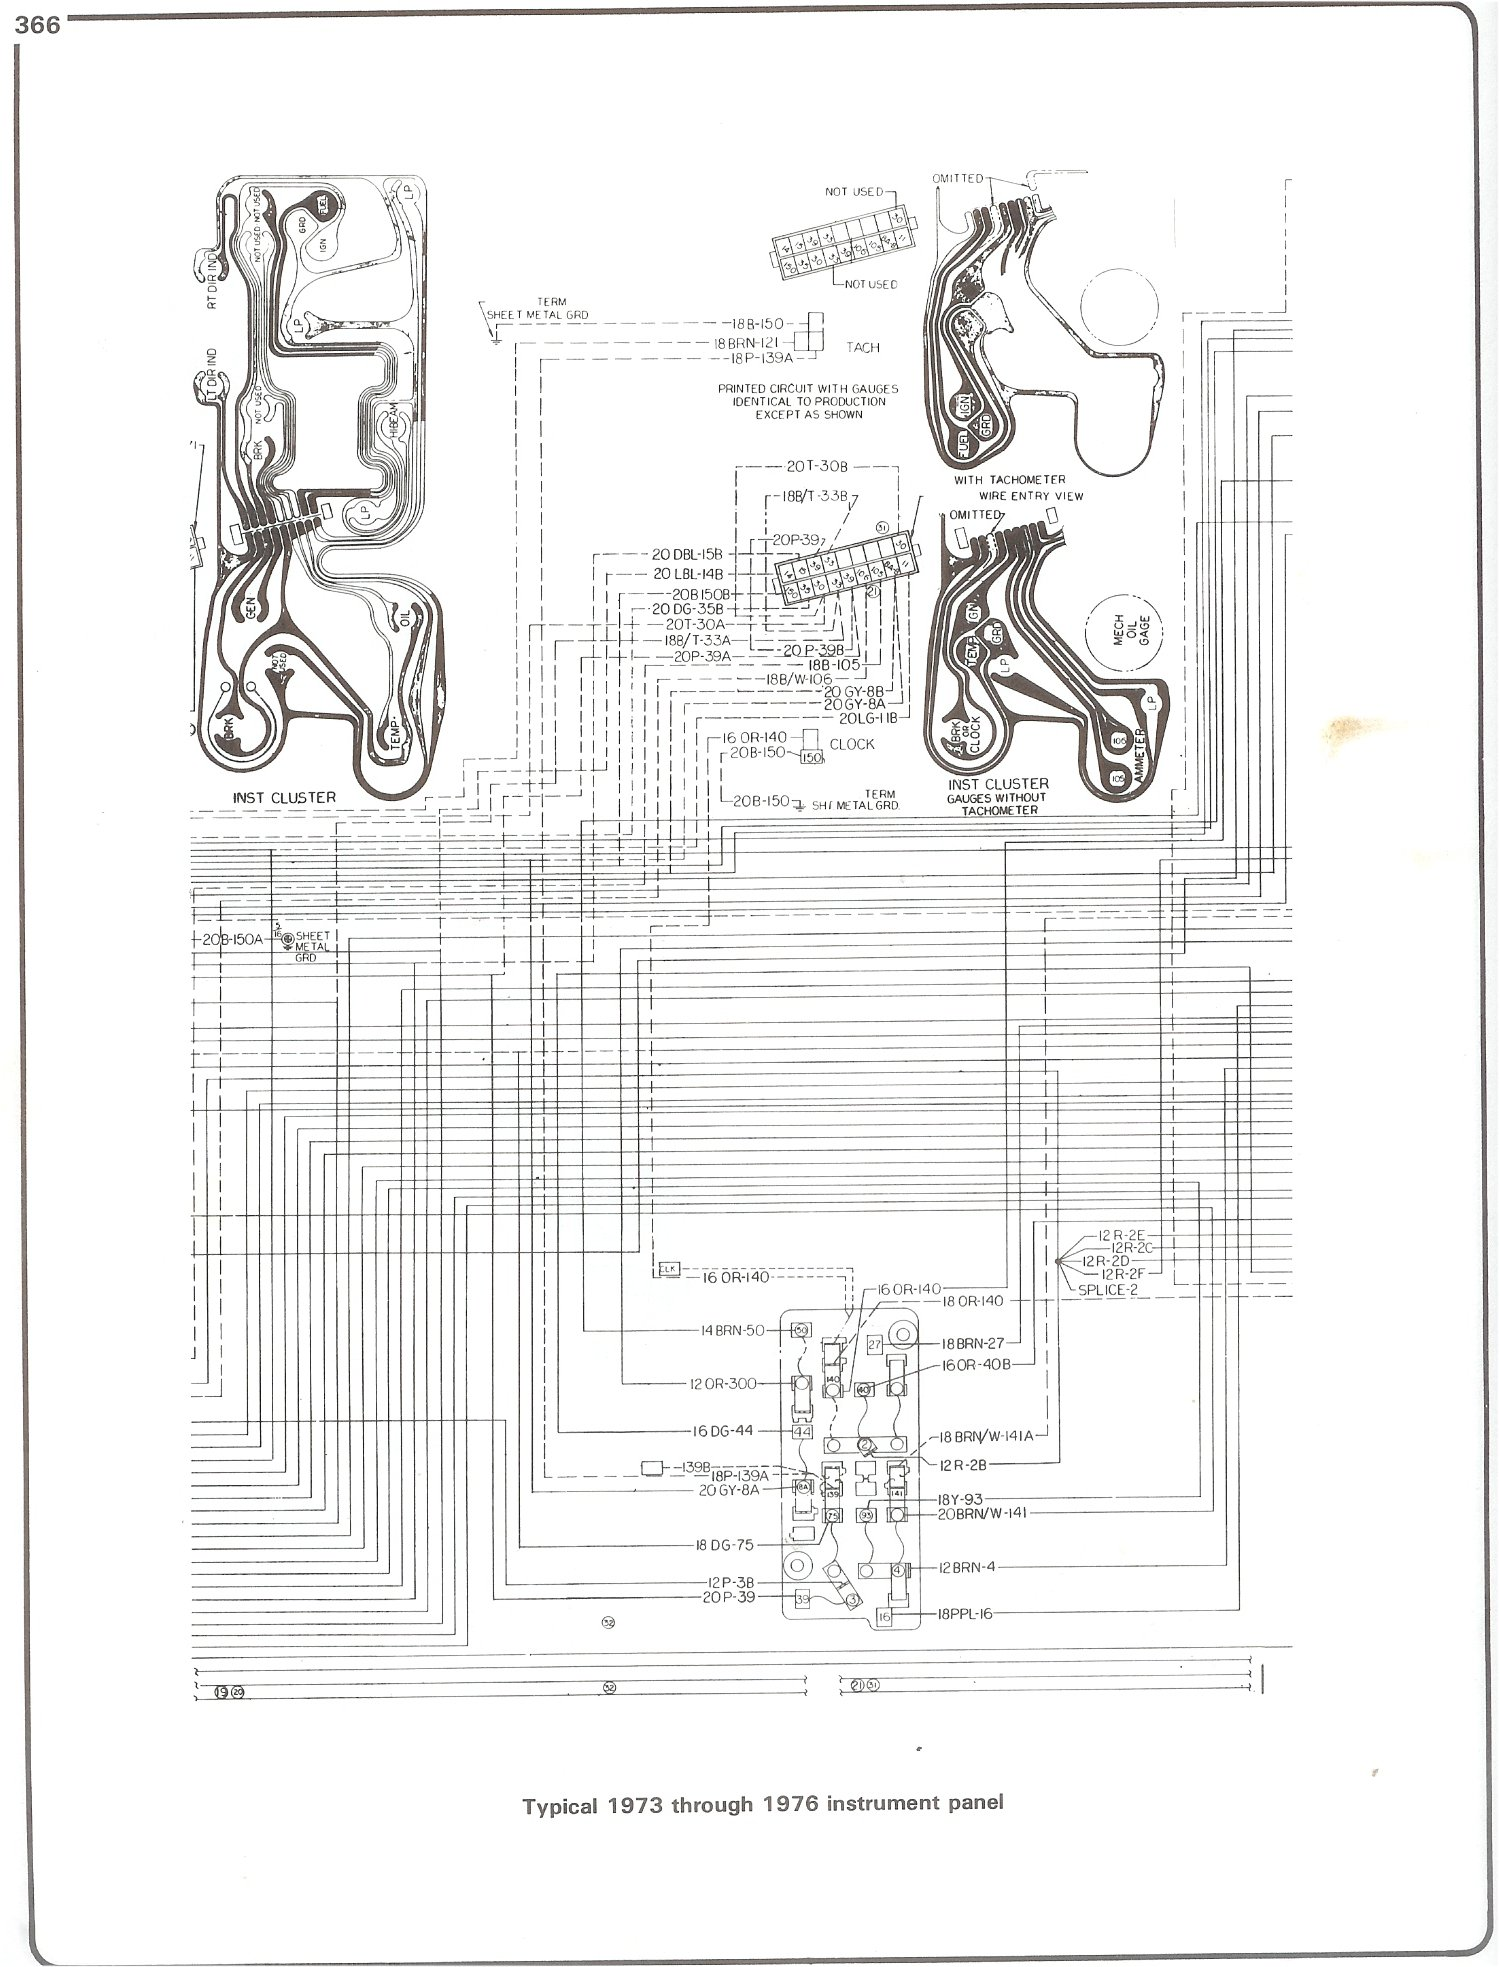 83 Chevy Fuse Box Diagram